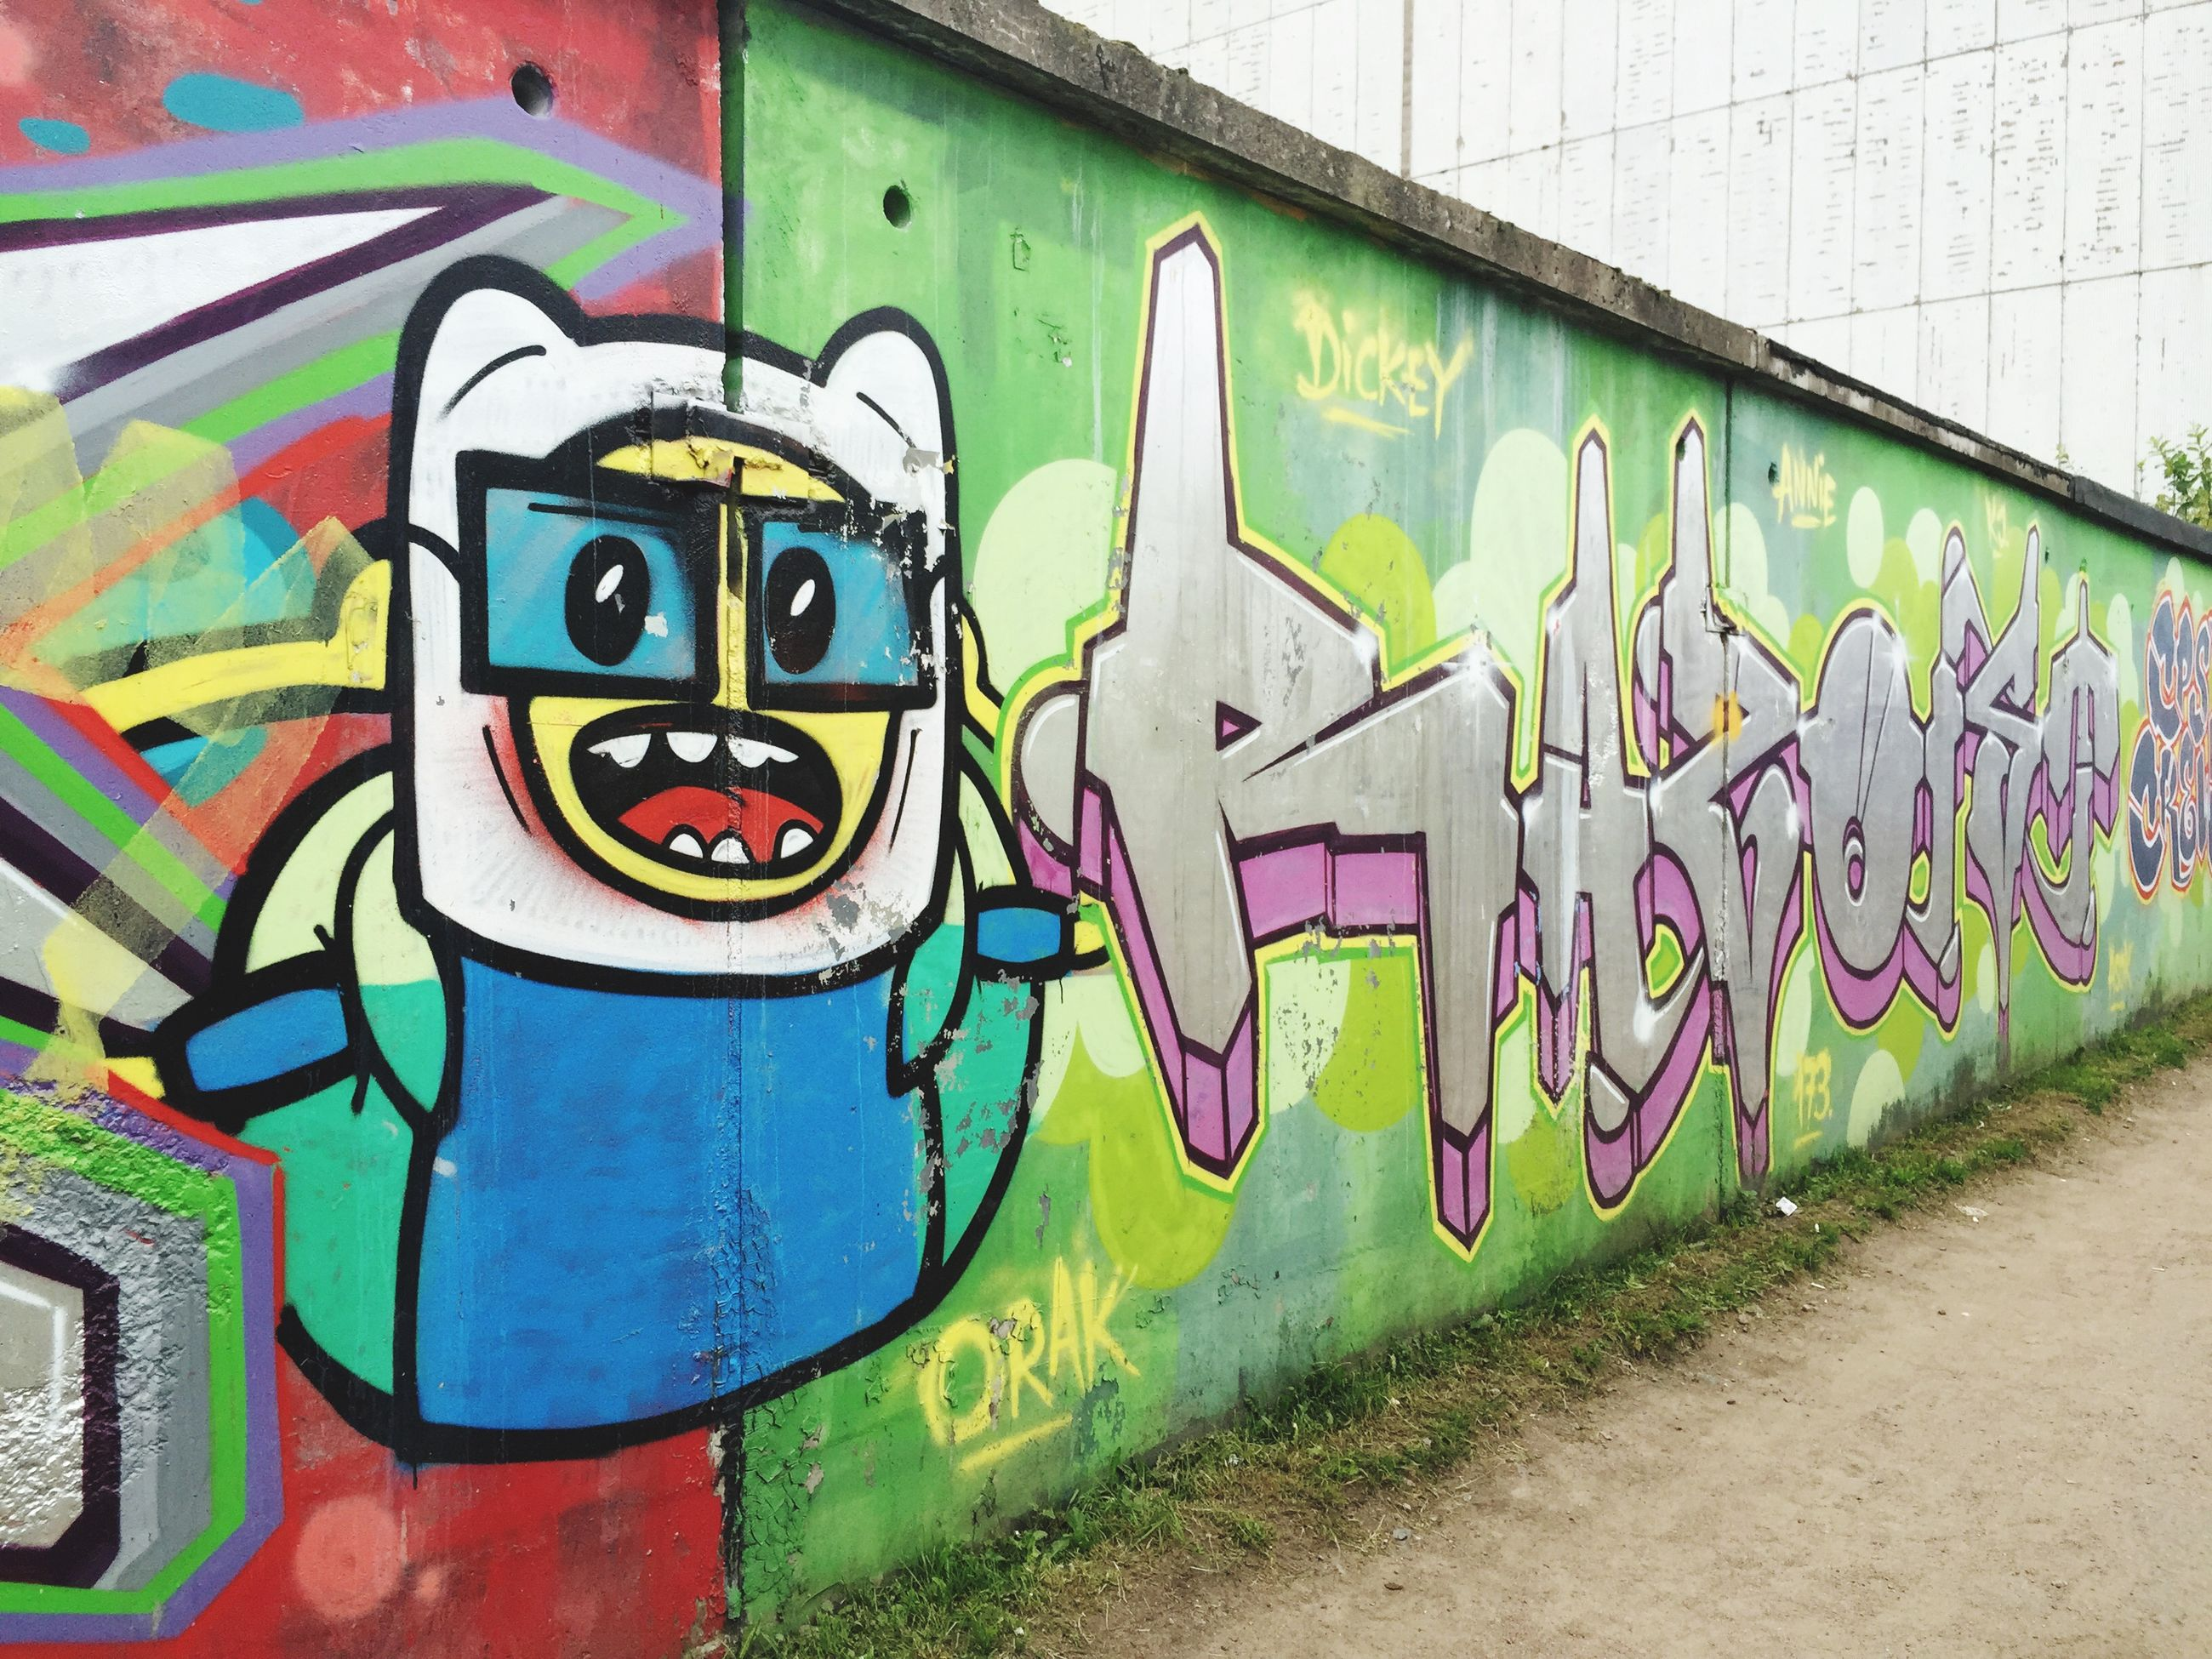 graffiti, art, creativity, art and craft, multi colored, wall - building feature, street art, built structure, architecture, text, wall, western script, building exterior, vandalism, communication, mural, day, no people, outdoors, pattern